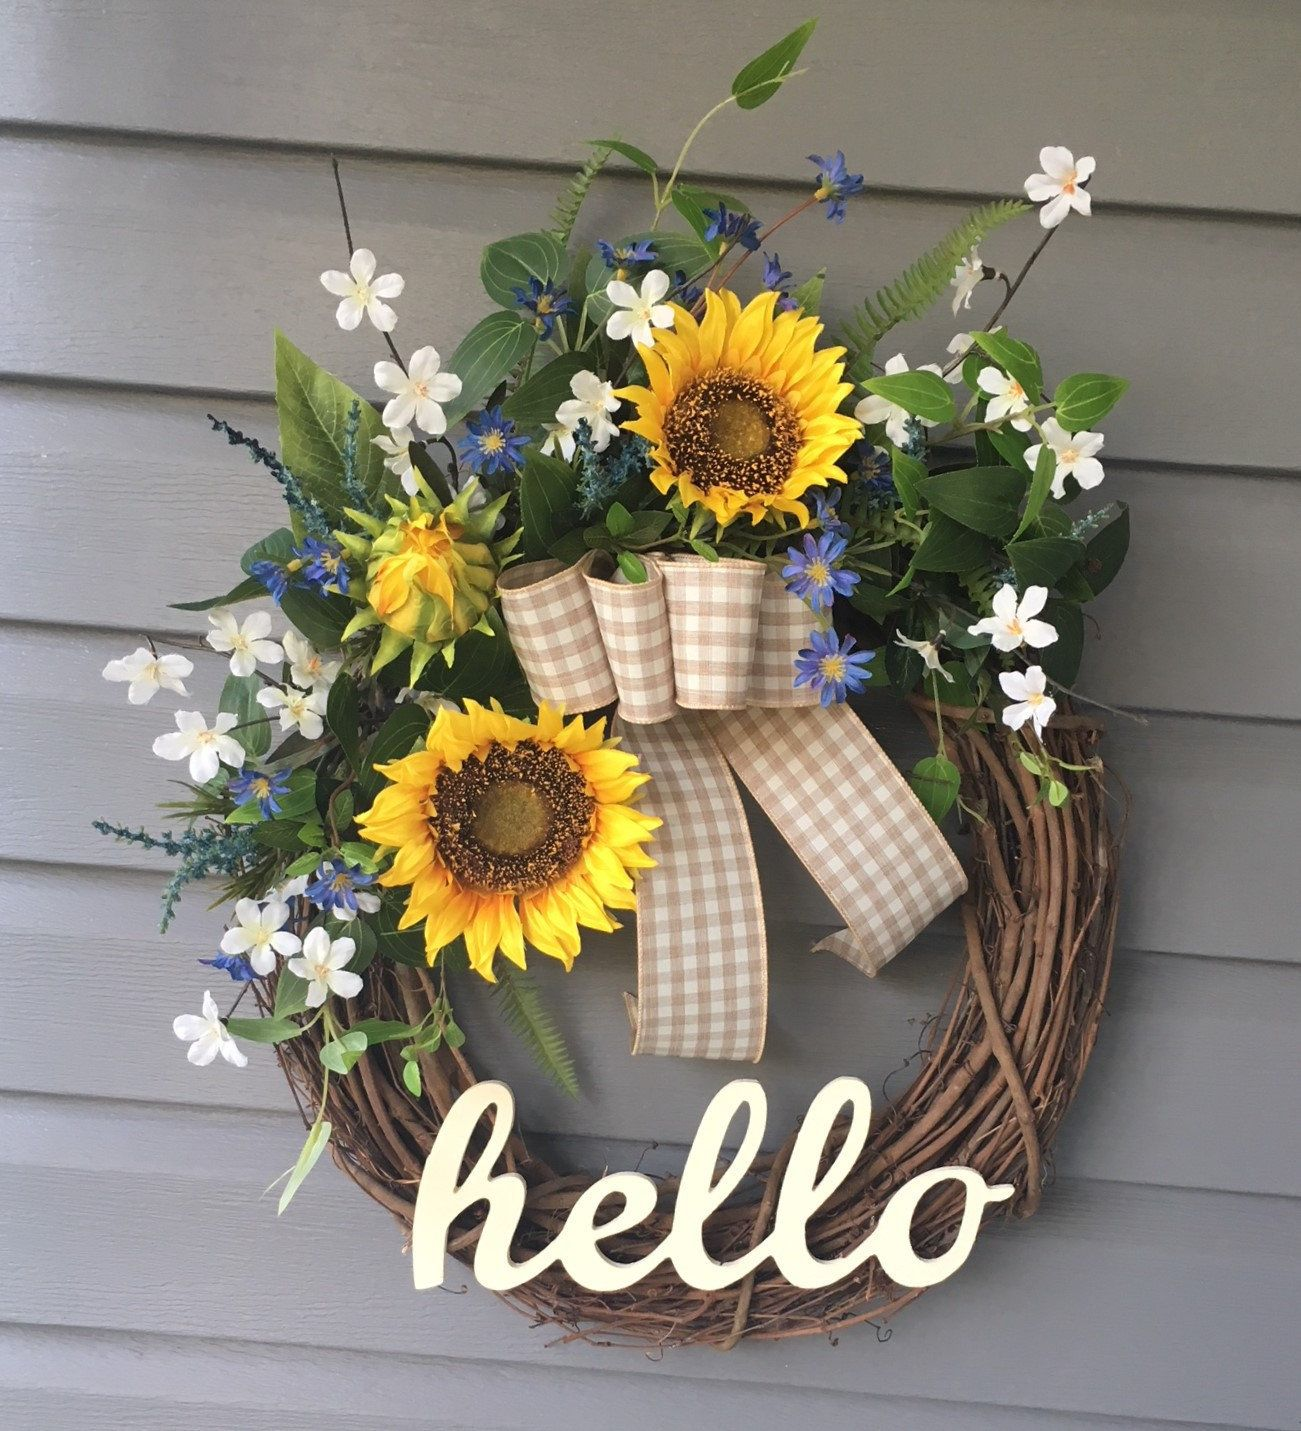 Photo of Summer Wreath for Front Door, Sunflower Wreath, Farmhouse Wreath, Rustic Country Decor, Gift for Her, Hello Wreath, Modern Wreath